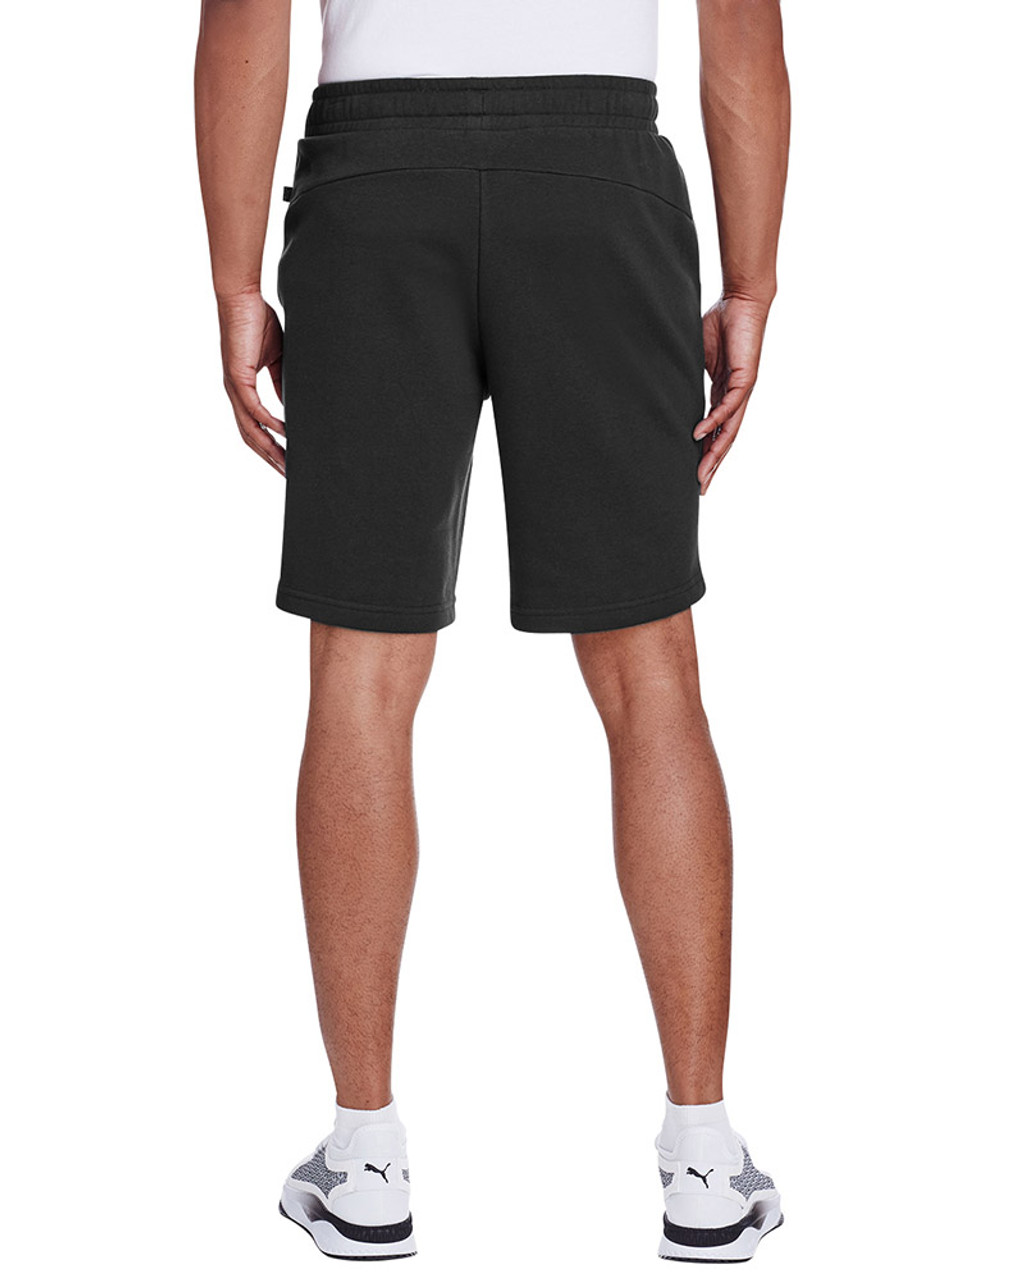 Puma Black/Smoke Pearl - back, 582008 Puma Sport Essential Adult Bermuda Short | Blankclothing.ca